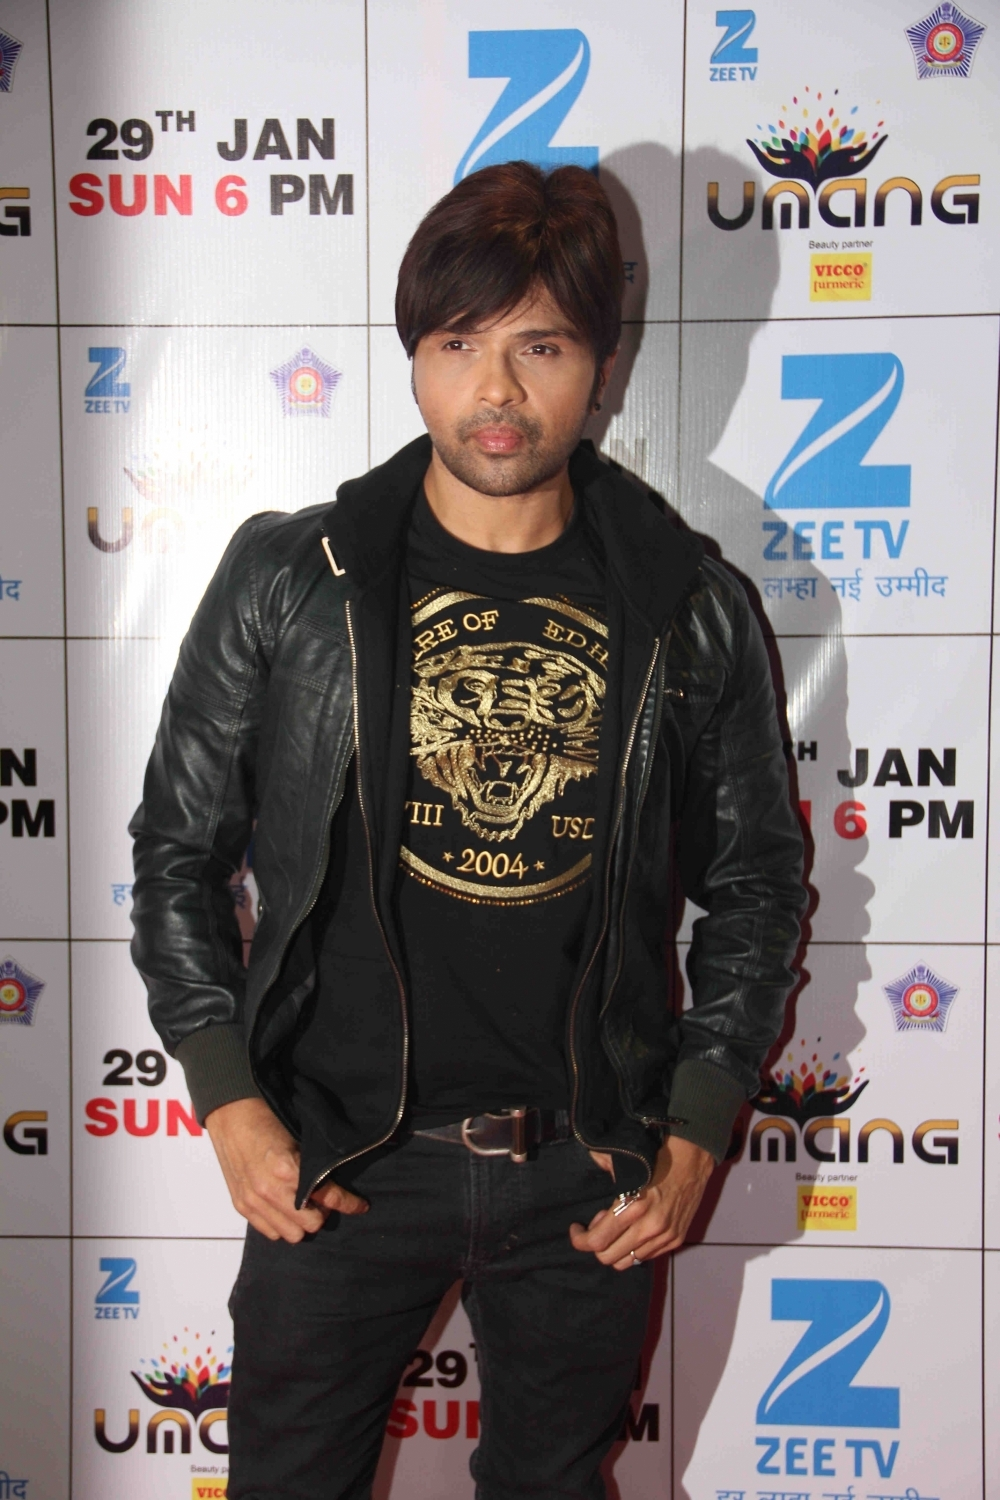 Mumbai: Singer Himesh Reshammiya during the Umang Mumbai Police Show 2017 in Mumbai on Jan 22, 2017. (Photo: IANS)